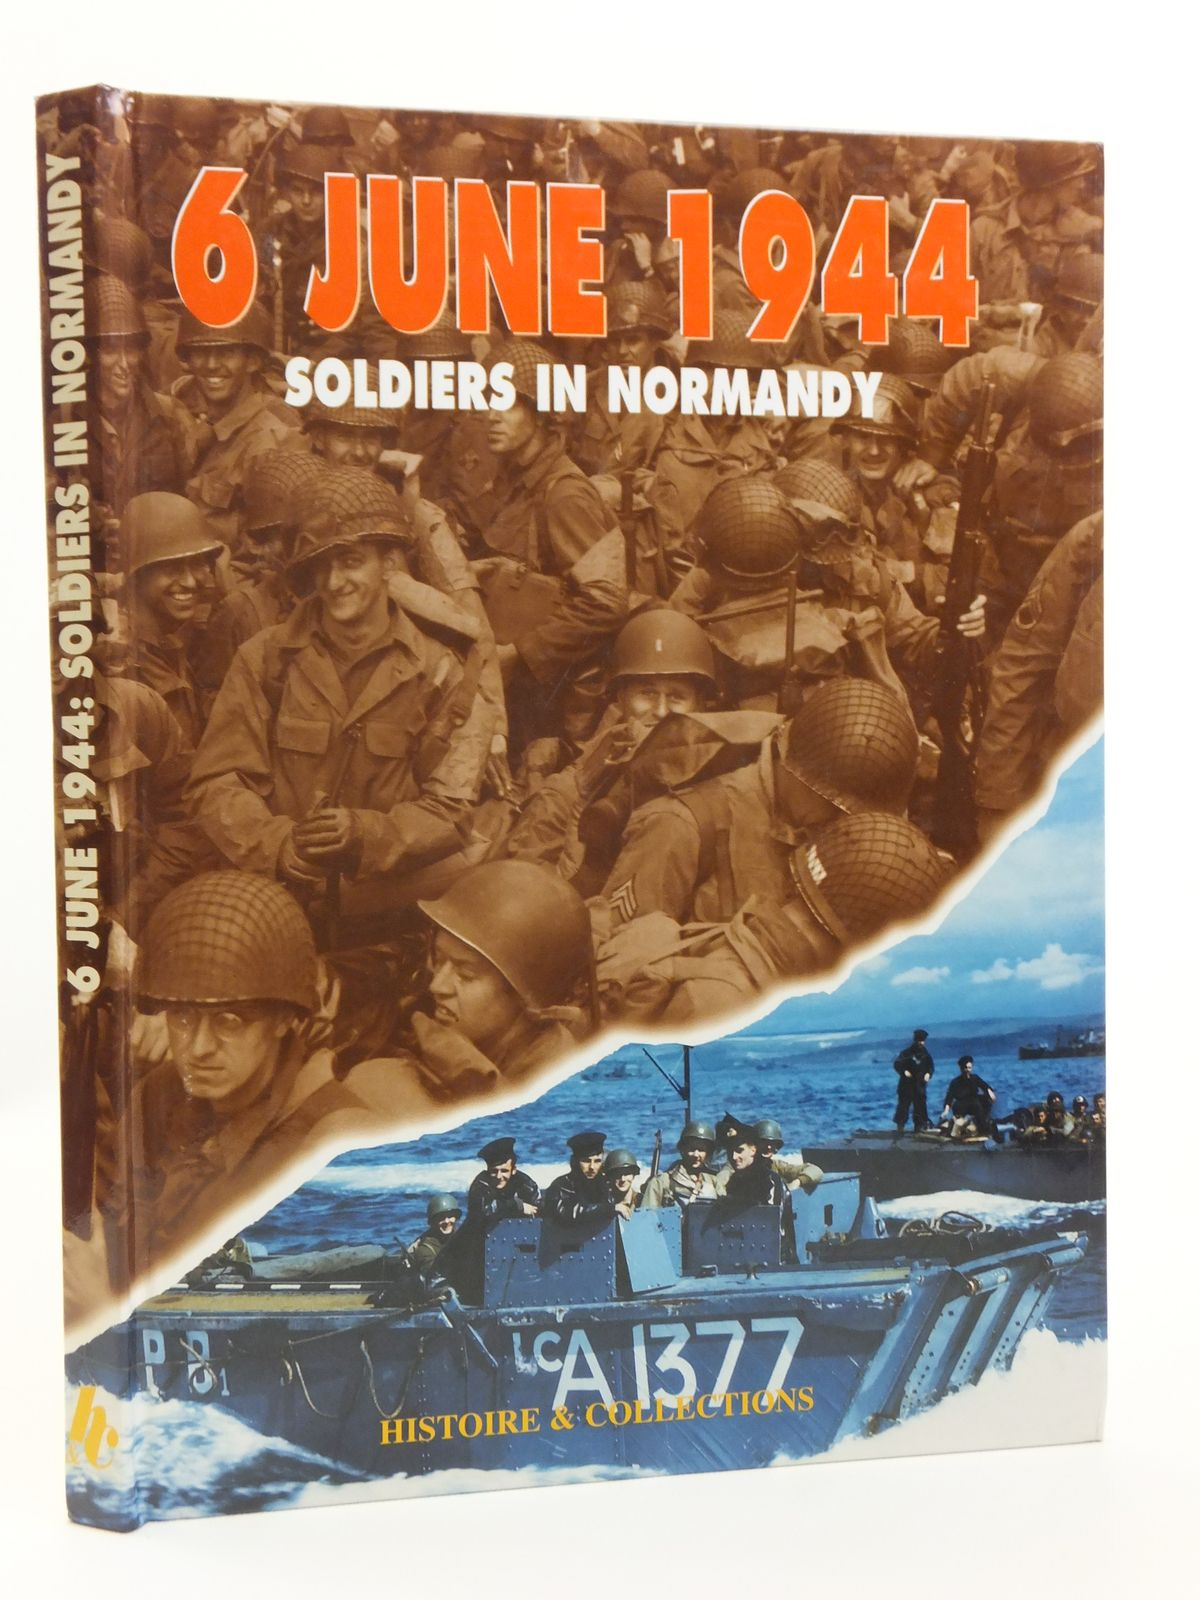 Photo of 6 JUNE 1944 SOLDIERS IN NORMANDY written by Charbonnier, Philippe Van Keer, Yves J. Villaume, Jean-Pierre published by Histoire & Collections (STOCK CODE: 2120684)  for sale by Stella & Rose's Books